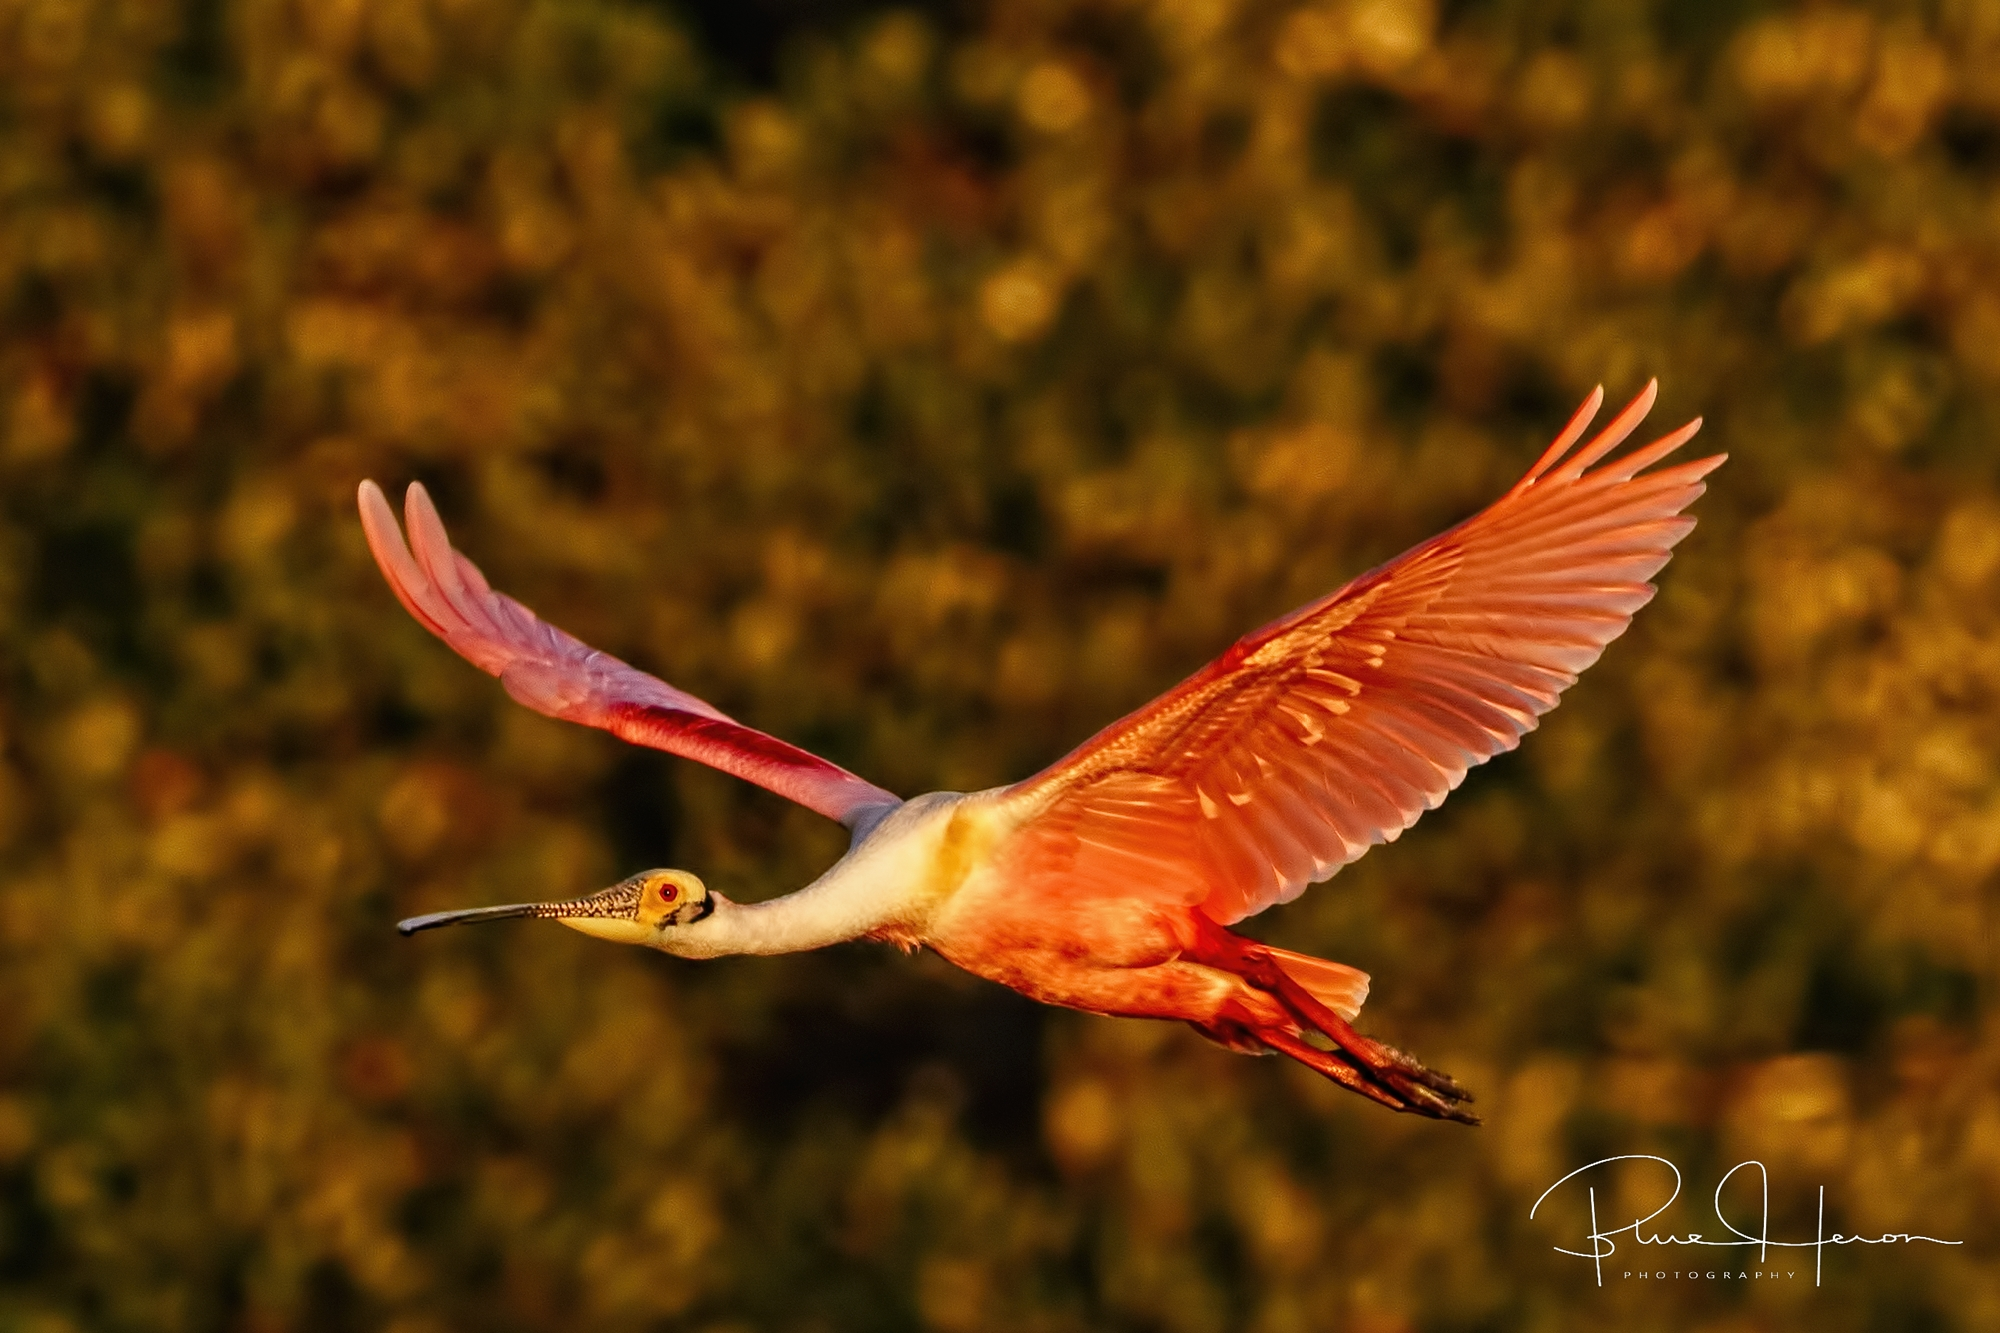 """The workshop was billed as """"Spoonbills"""" and more...Indeed it was. Here a rosy sunset of a Roseate Spoonbill returning at sundown."""